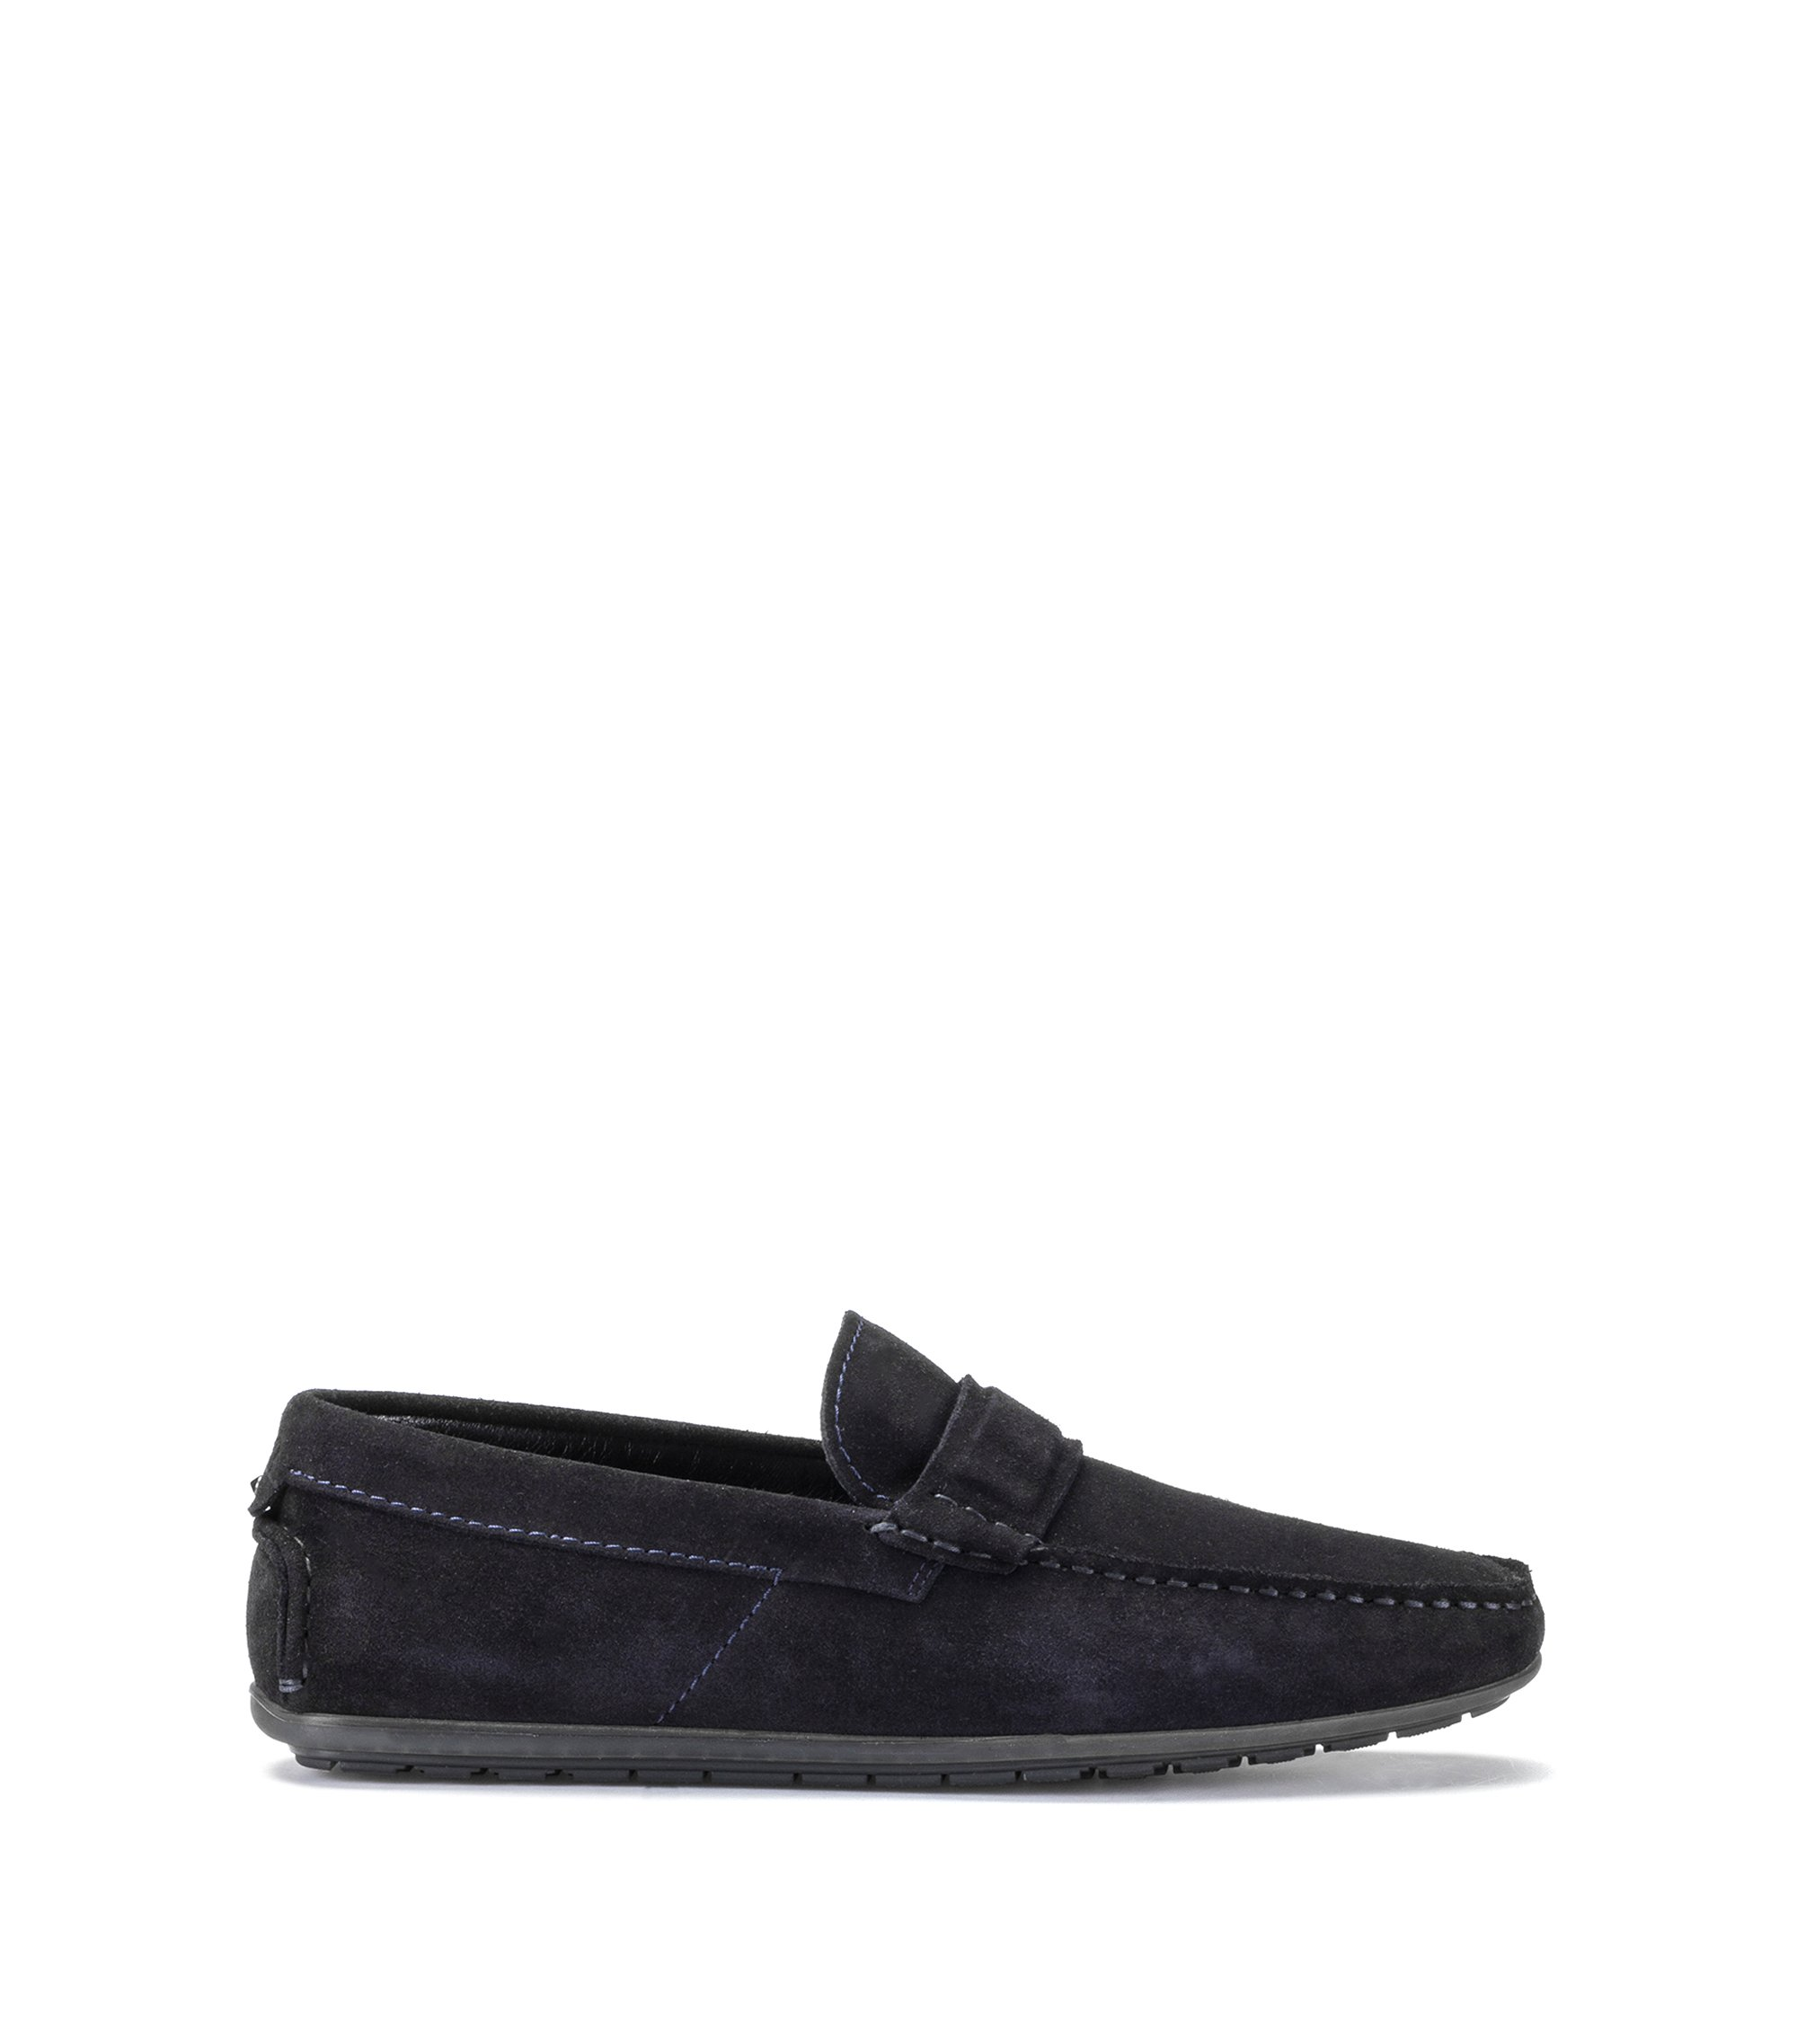 Slip-on moccasins in suede leather, Dark Blue